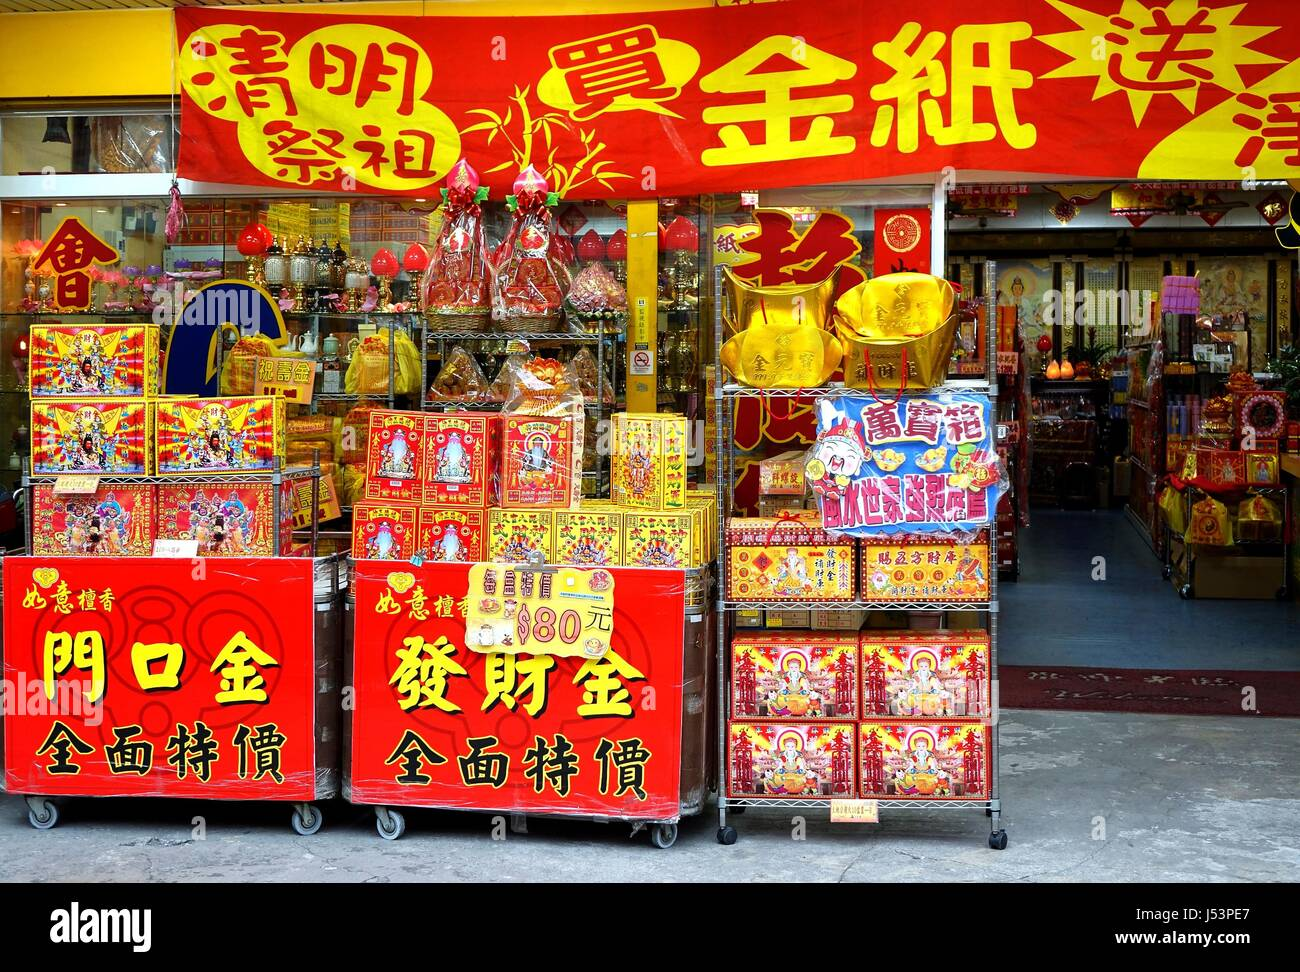 KAOHSIUNG, TAIWAN -- MARCH 8, 2014: A store sells Buddhist worship materials and supplies such as paper money, wine - Stock Image